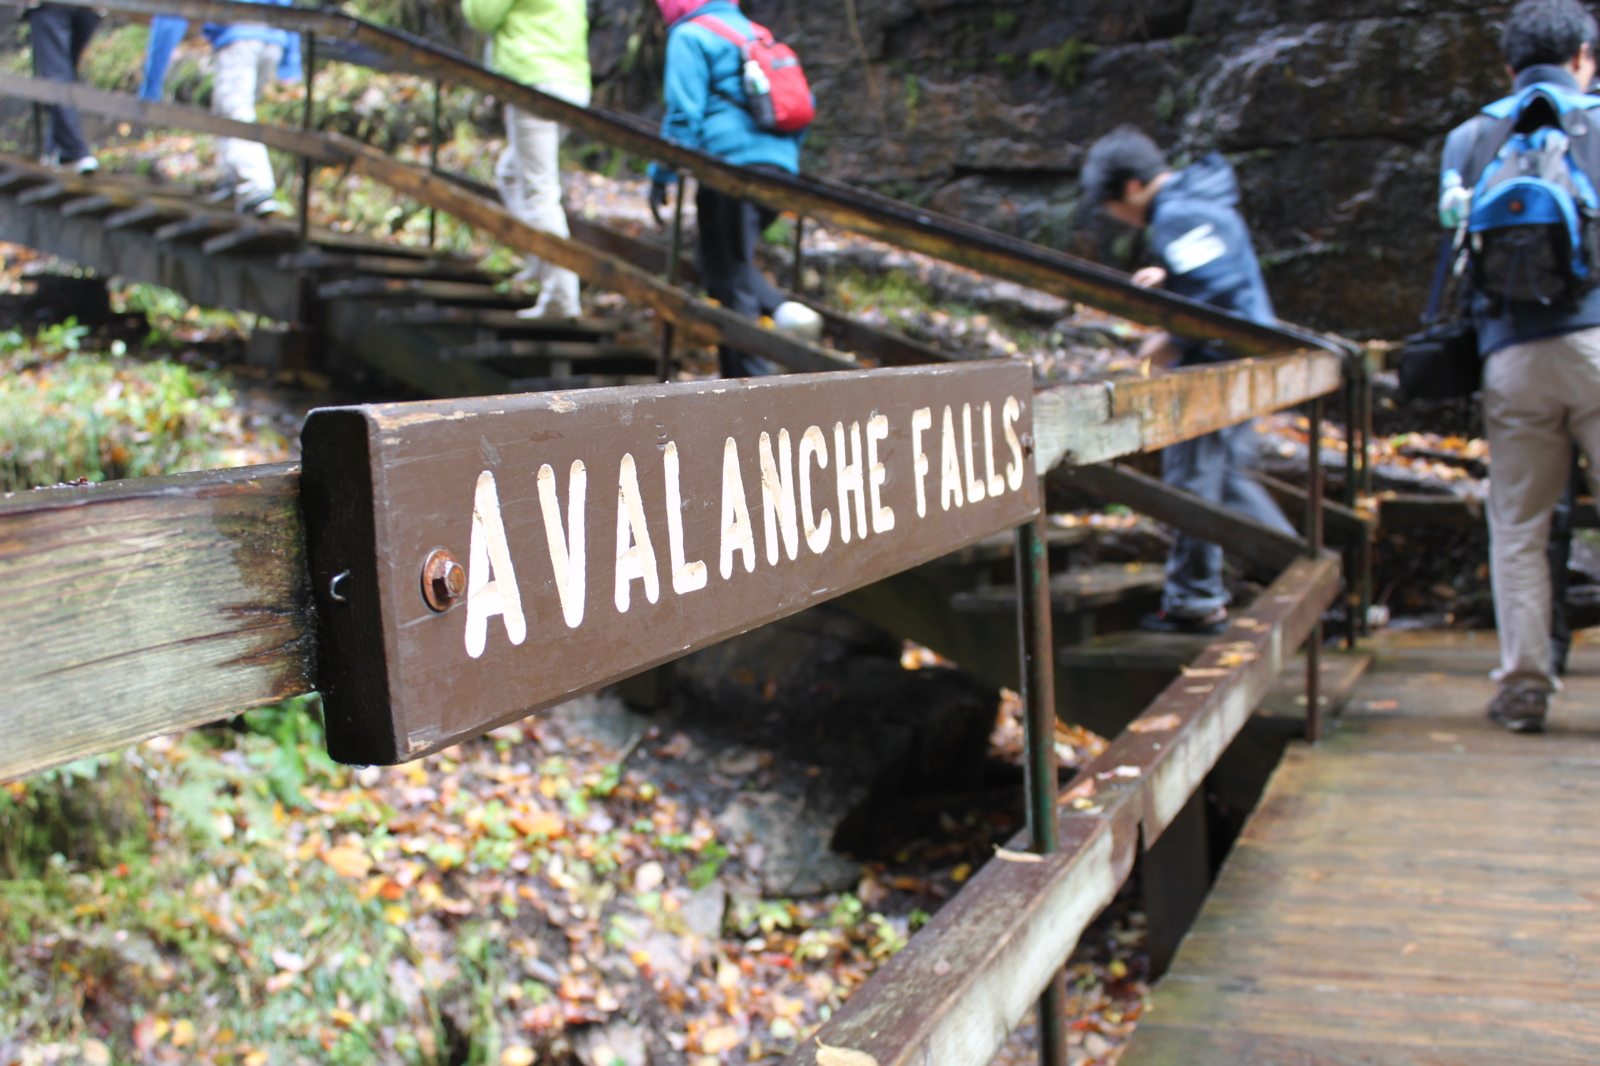 Avalanche Falls - The Flume Gorge - White Mountains, New Hampshire